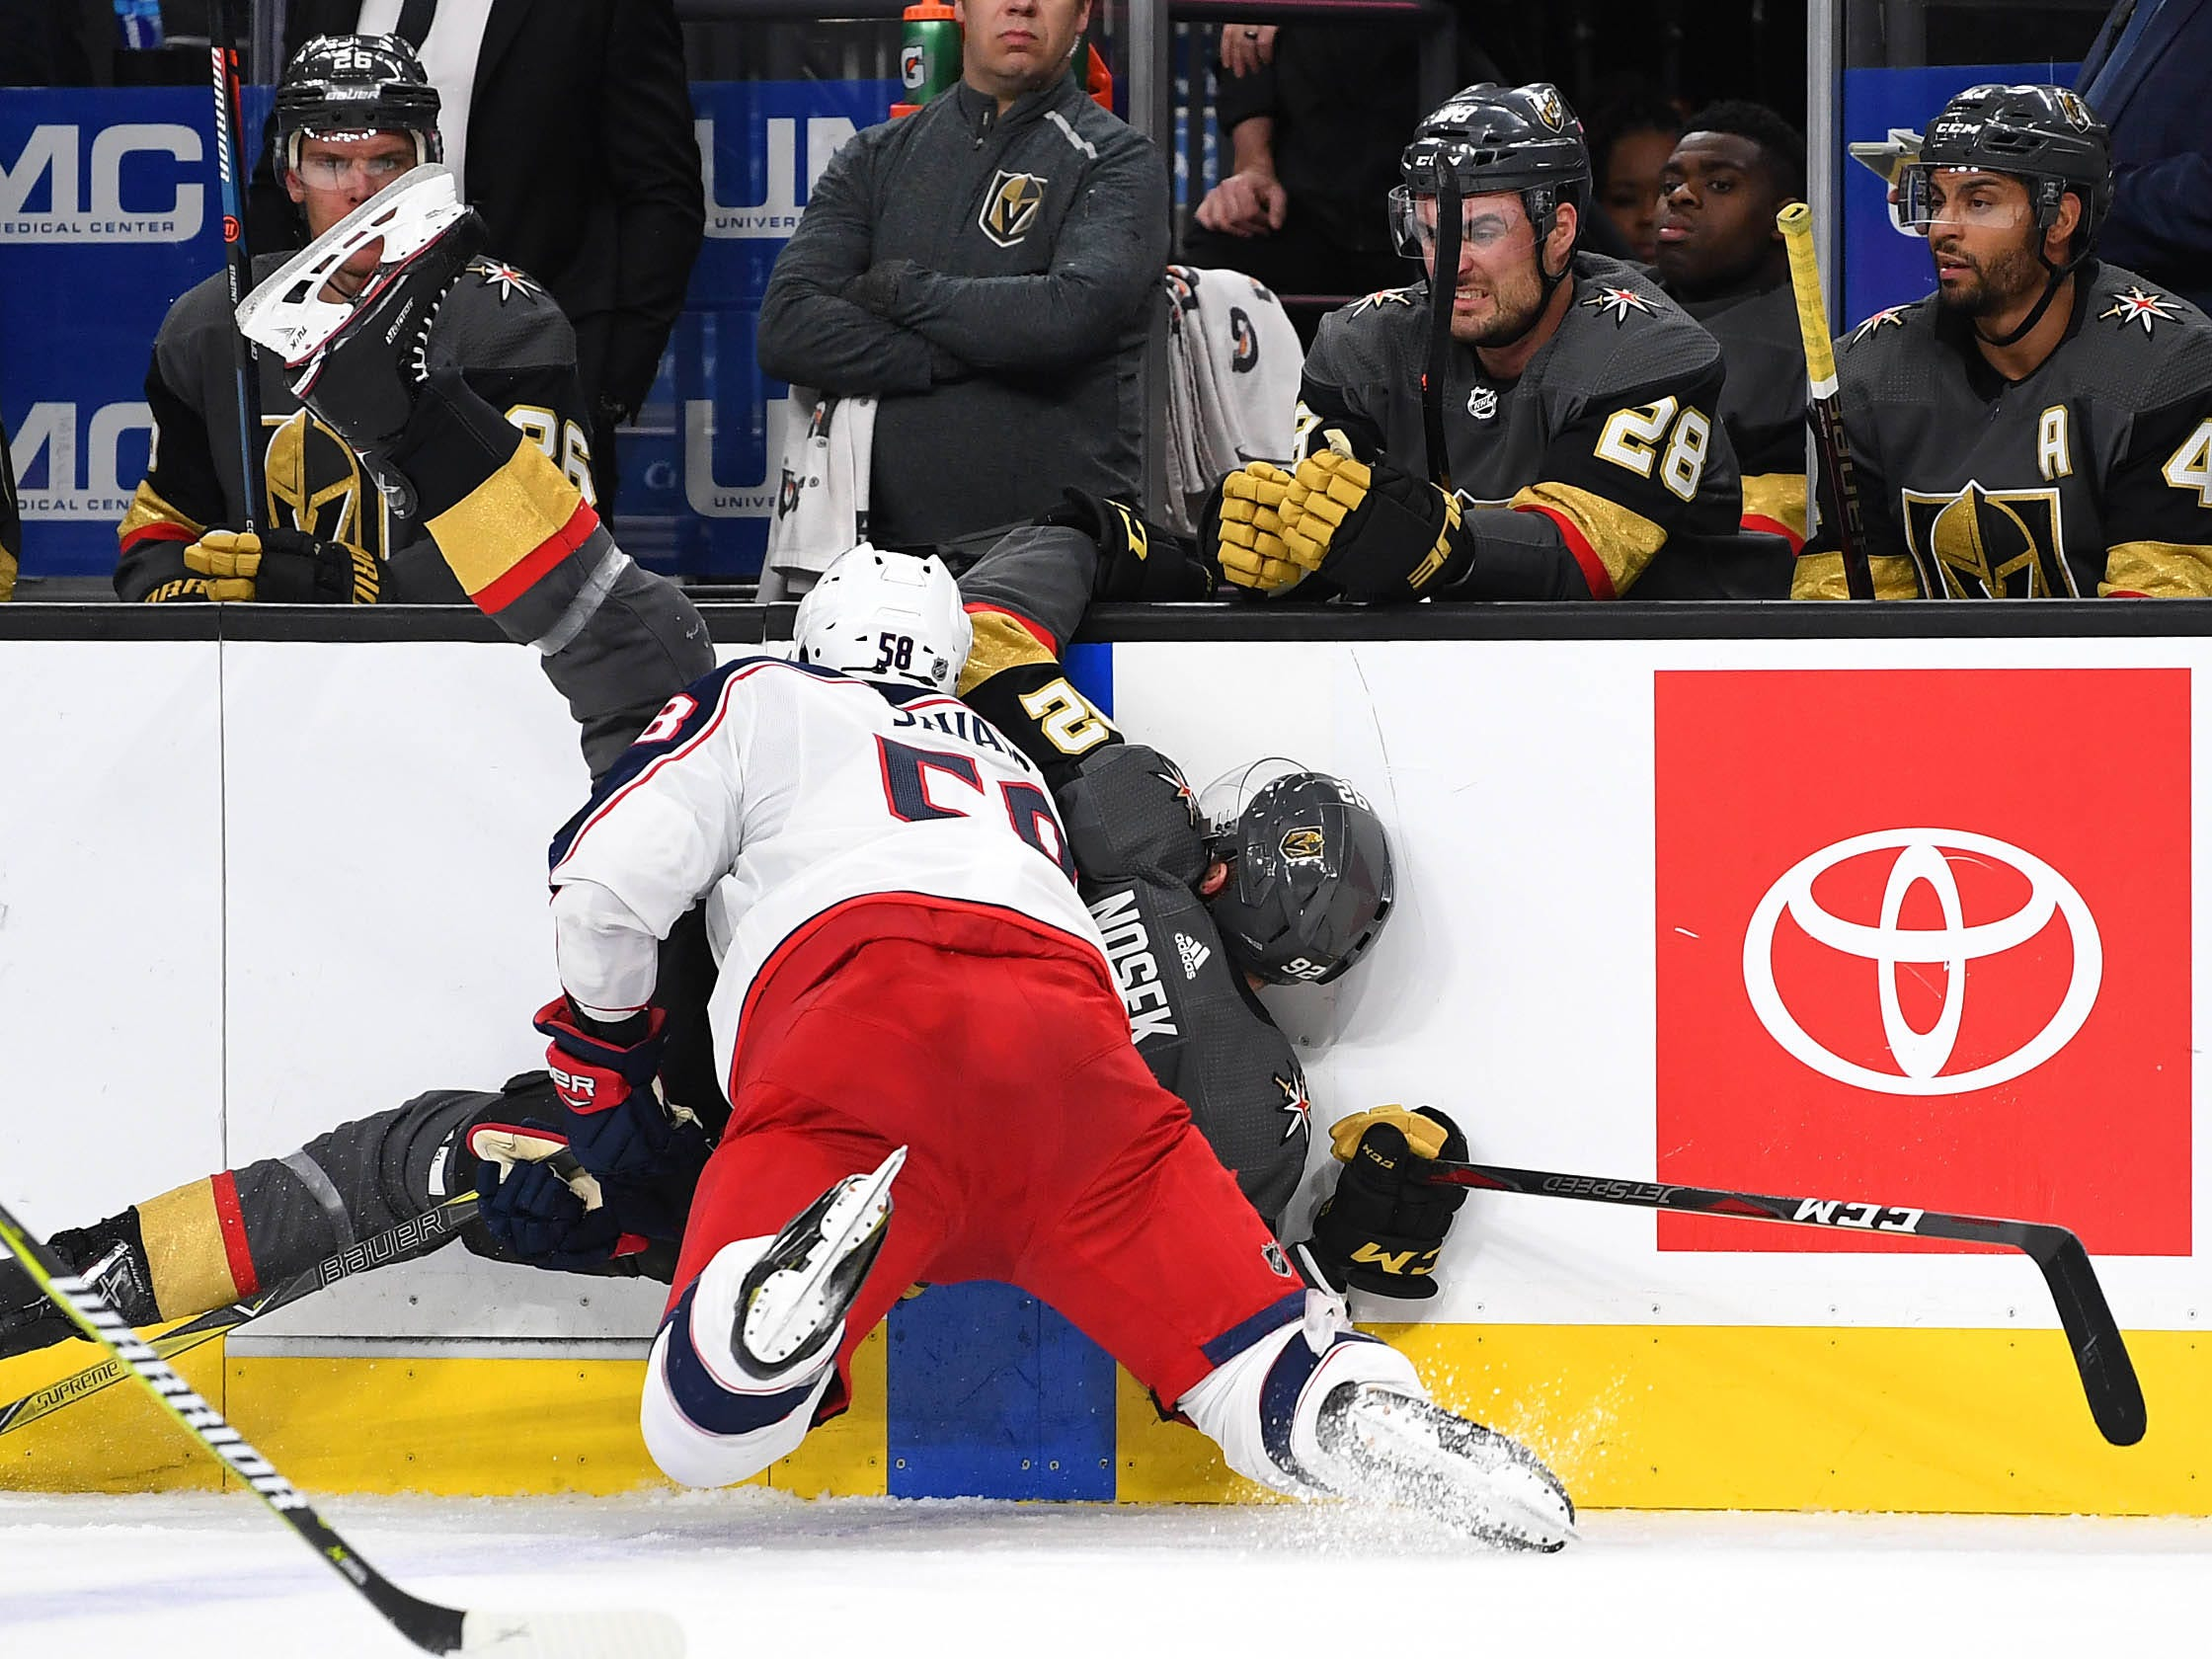 Feb. 9: Columbus Blue Jackets defenseman David Savard checks Vegas Golden Knights left wing Tomas Nosek into the boards during the second period at T-Mobile Arena.